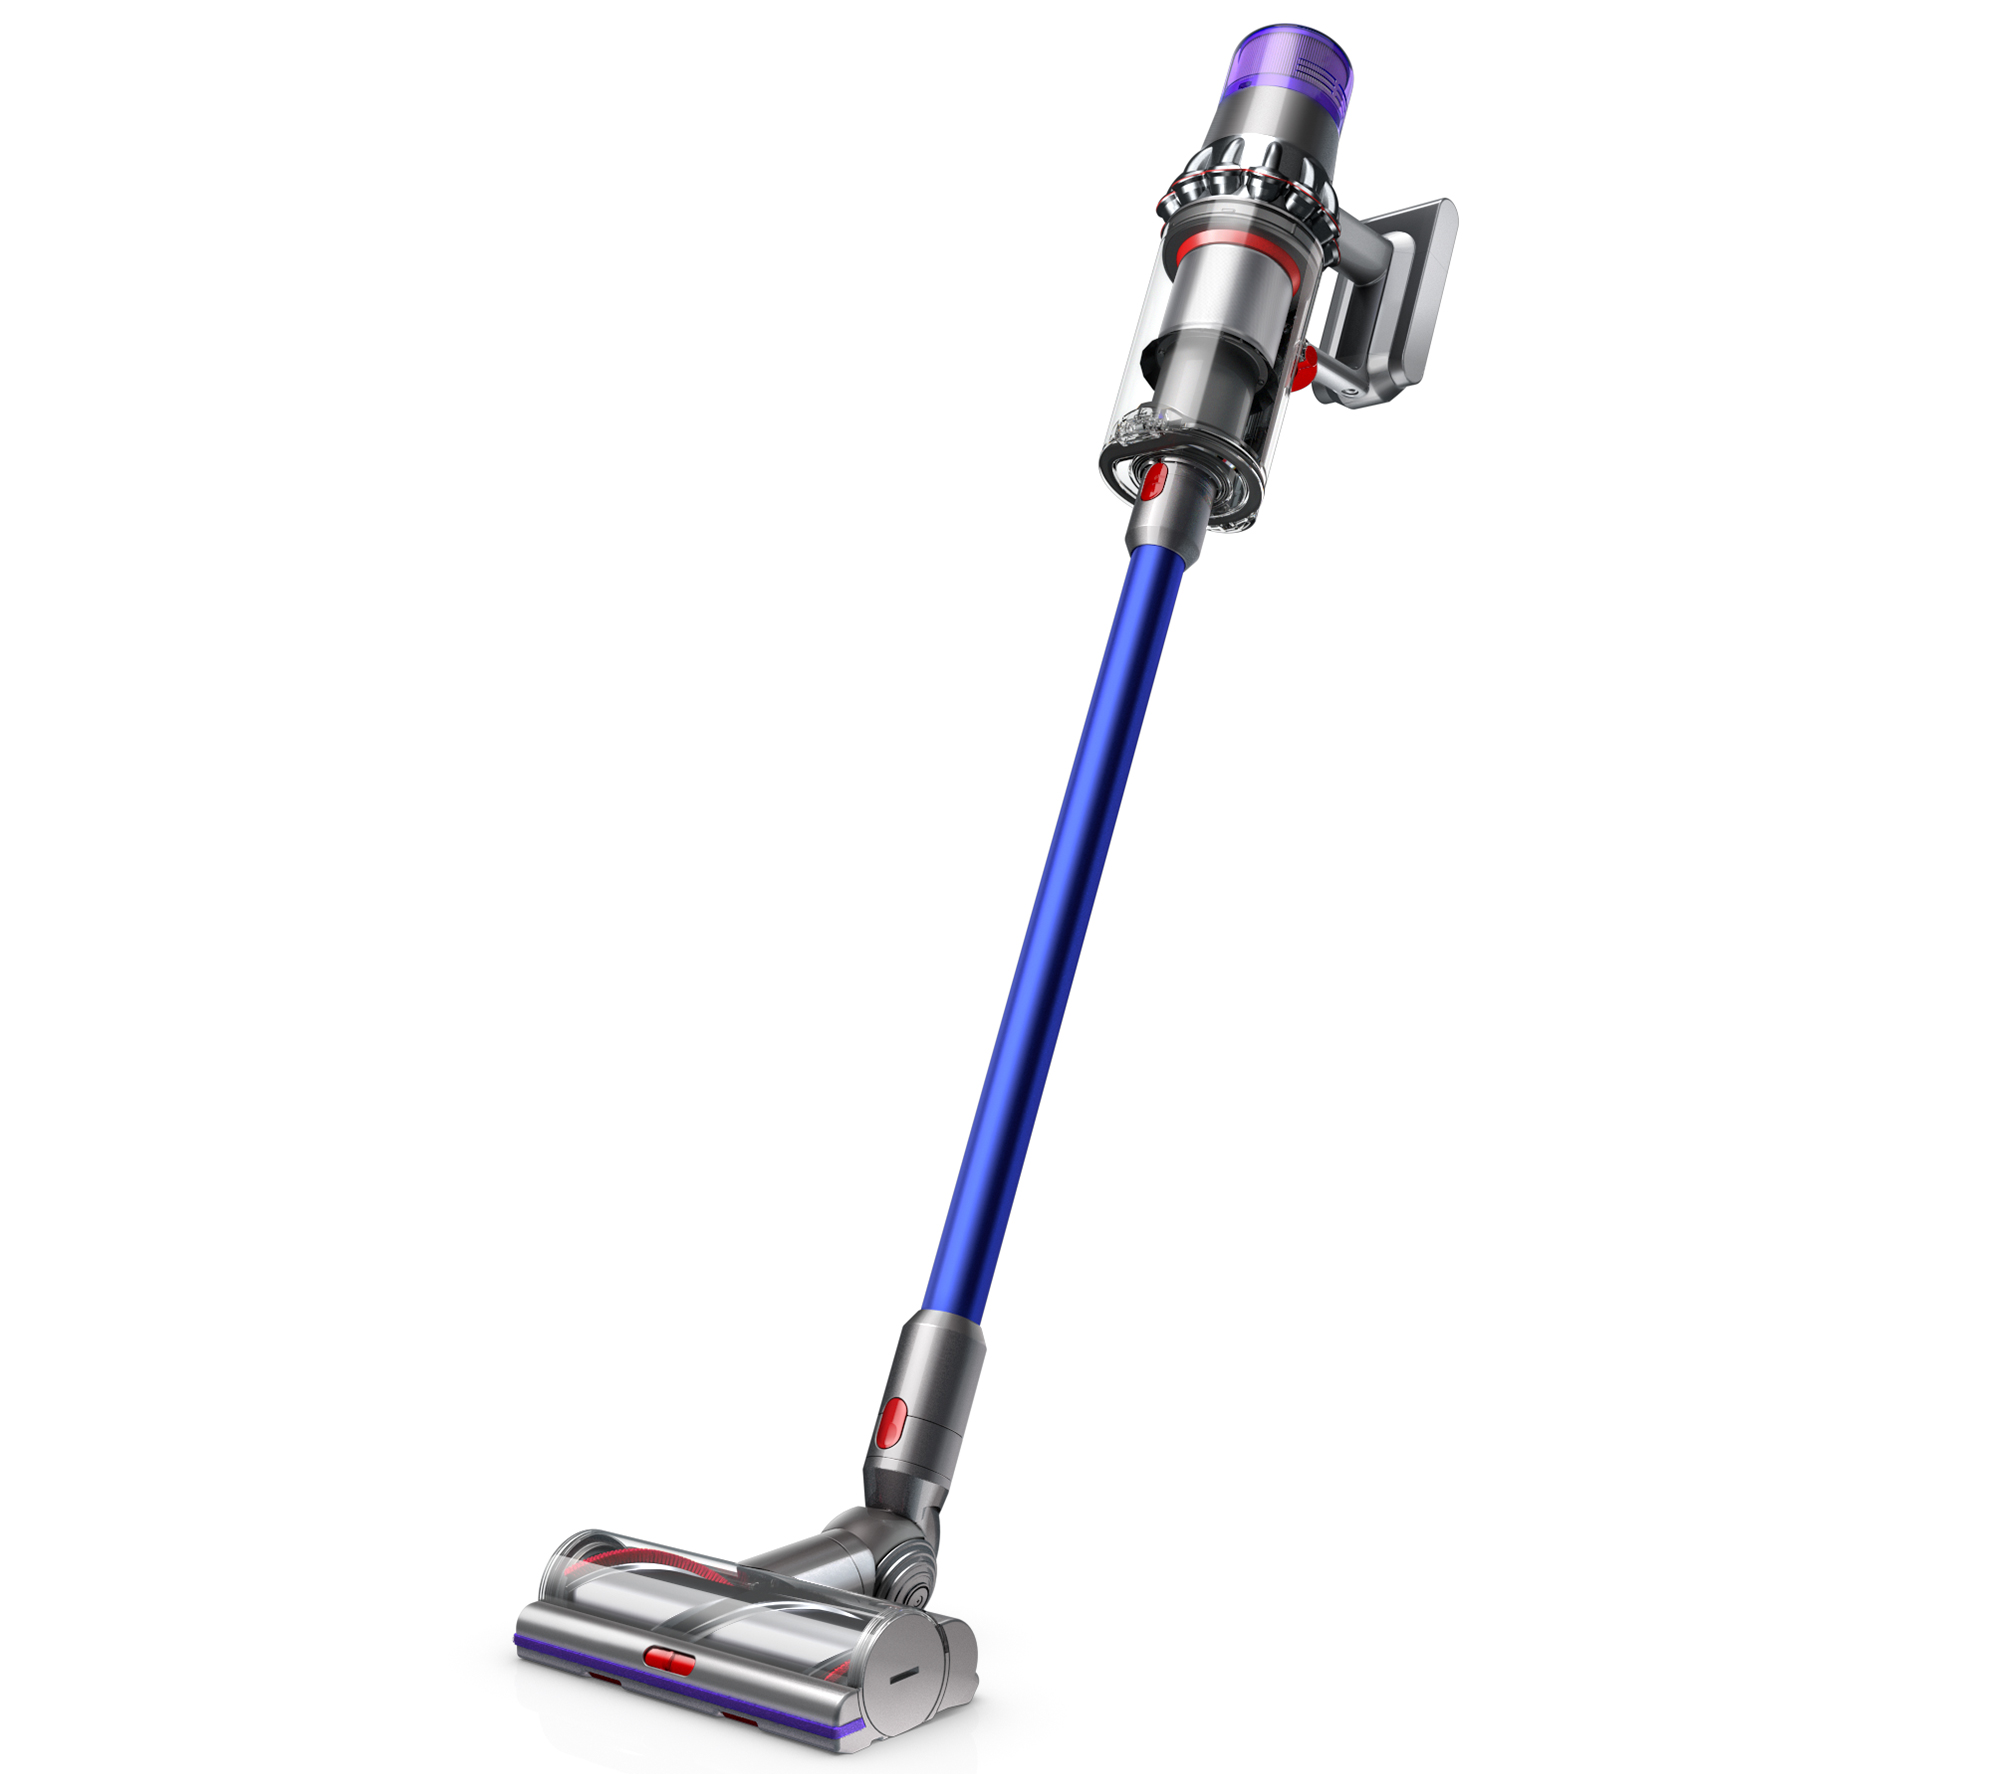 Dyson New V11 Absolute Cordless Vacuum Cleaner Jack